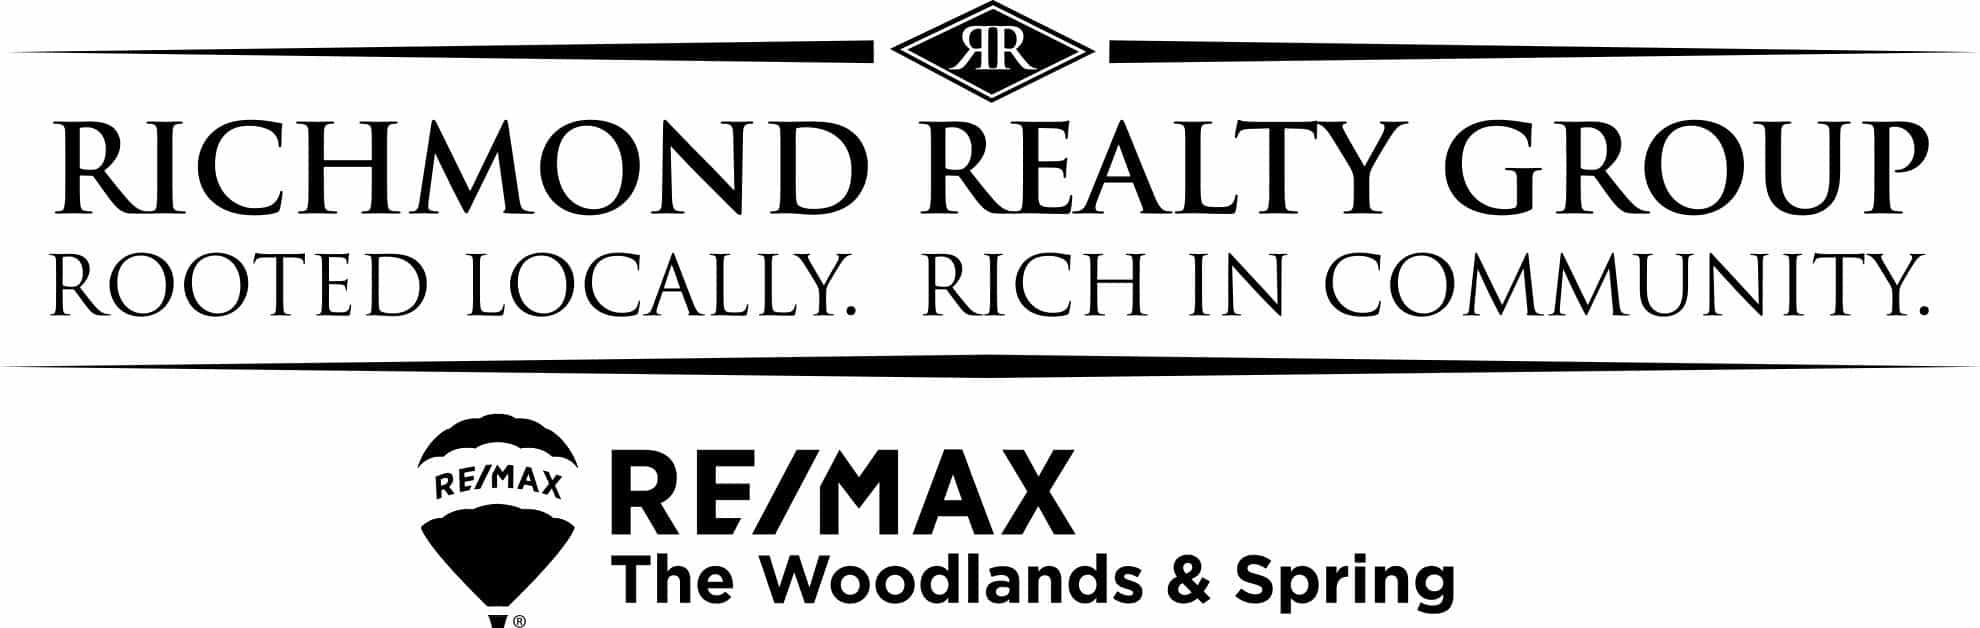 The Richmond Realty Group Logo